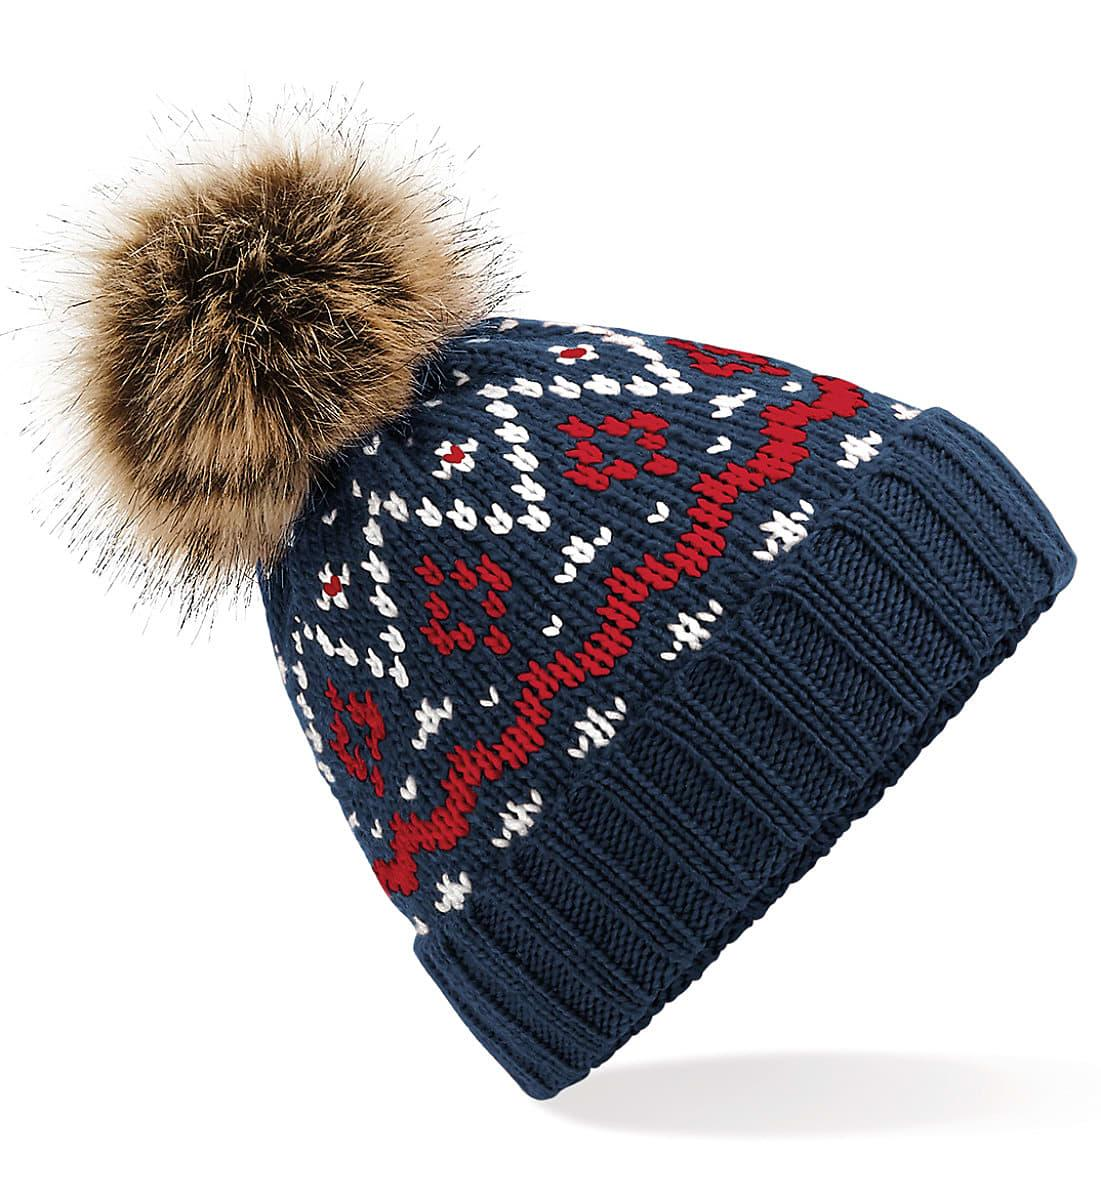 Beechfield Fair Isle Pop Pom Beanie Hat in French Navy / Classic Red / White (Product Code: B411)